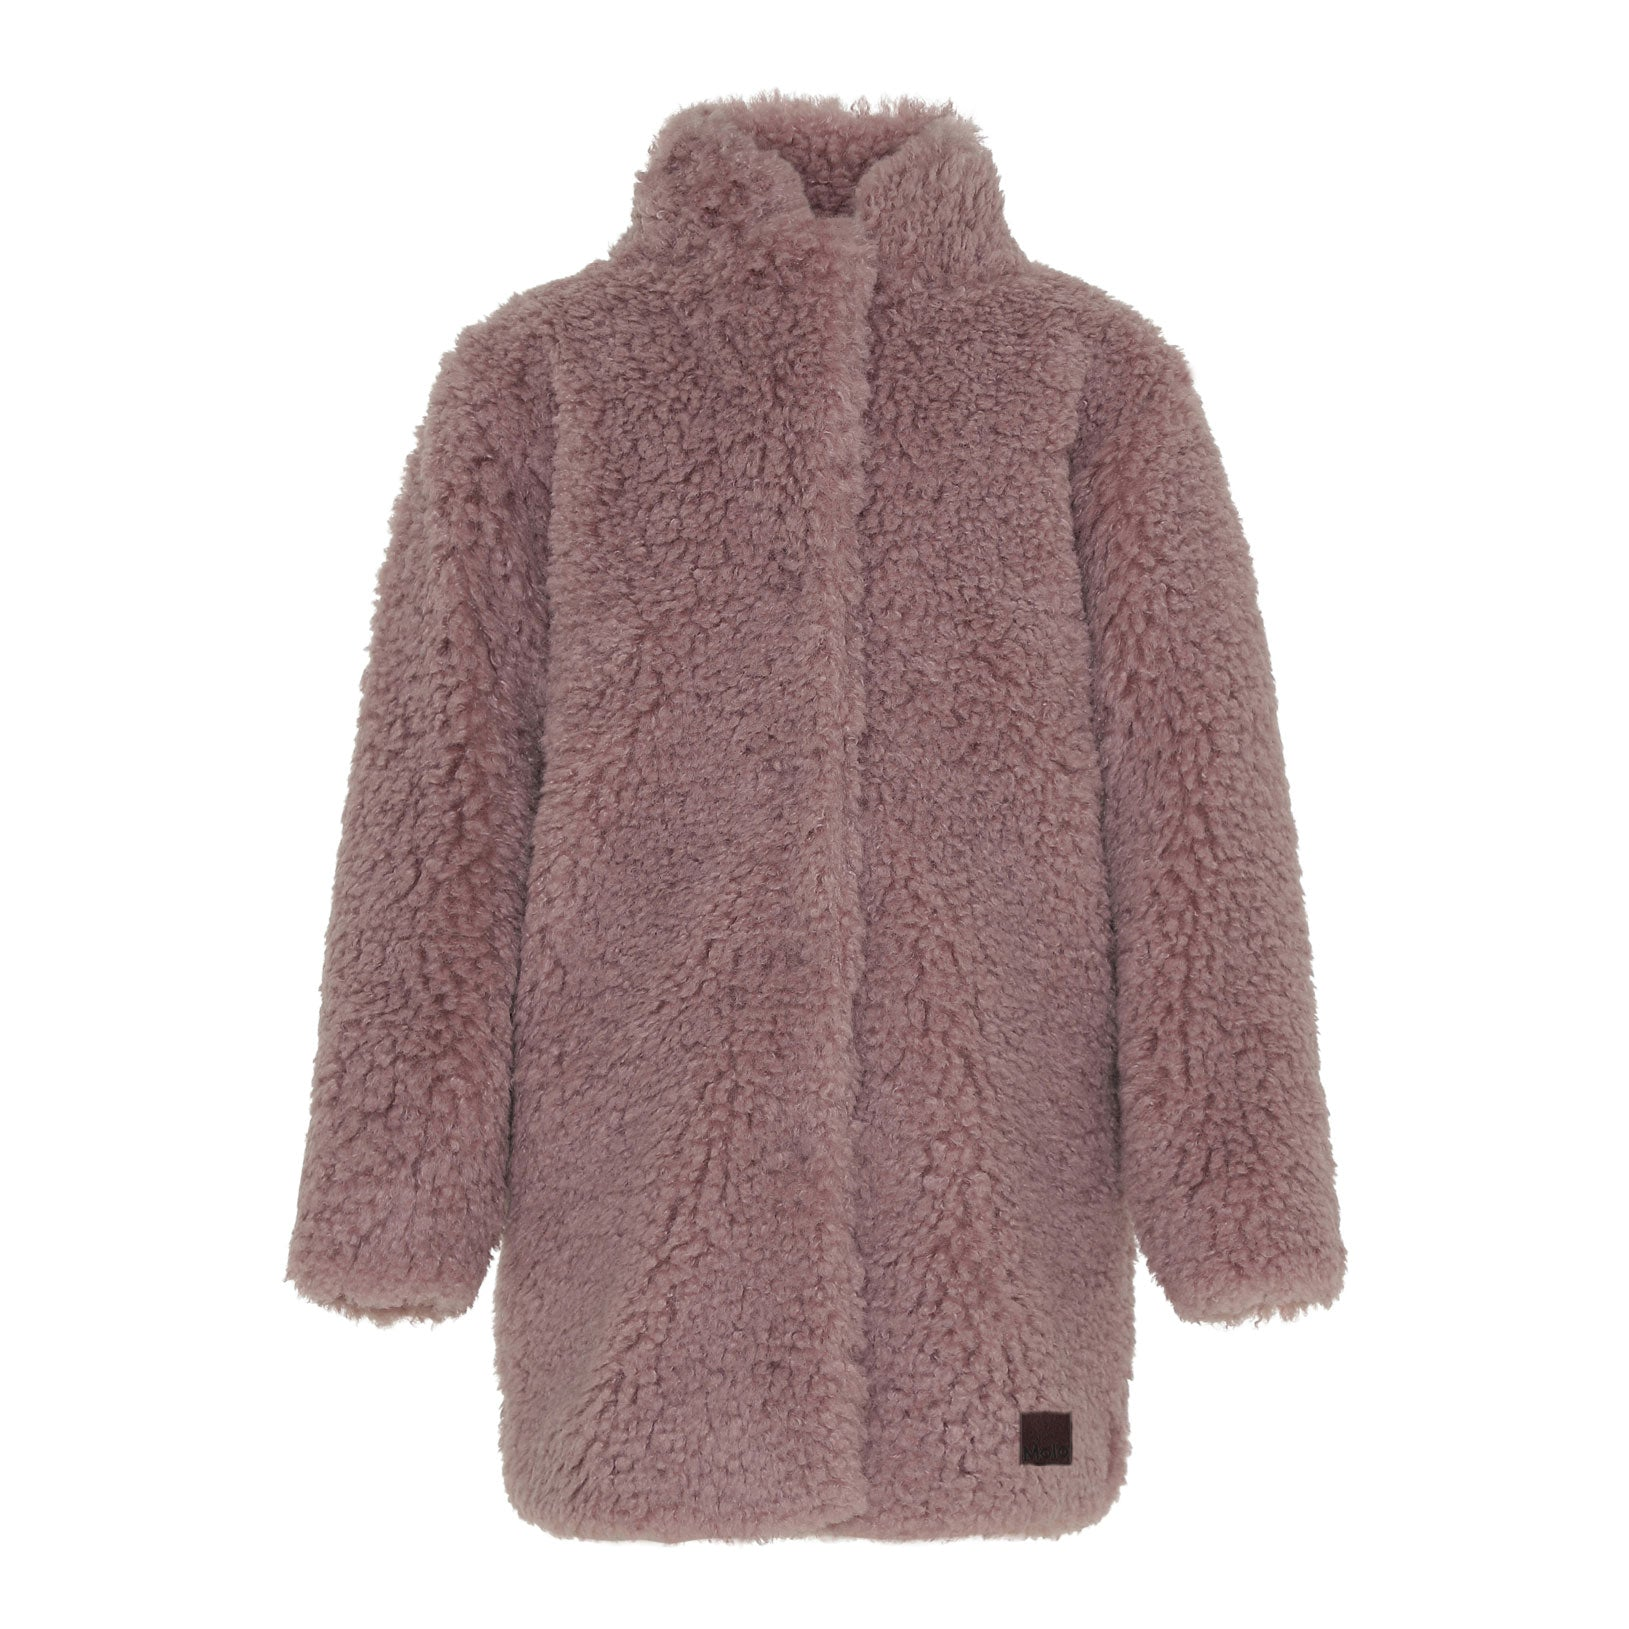 Molo Star Dust Teddy Jacket